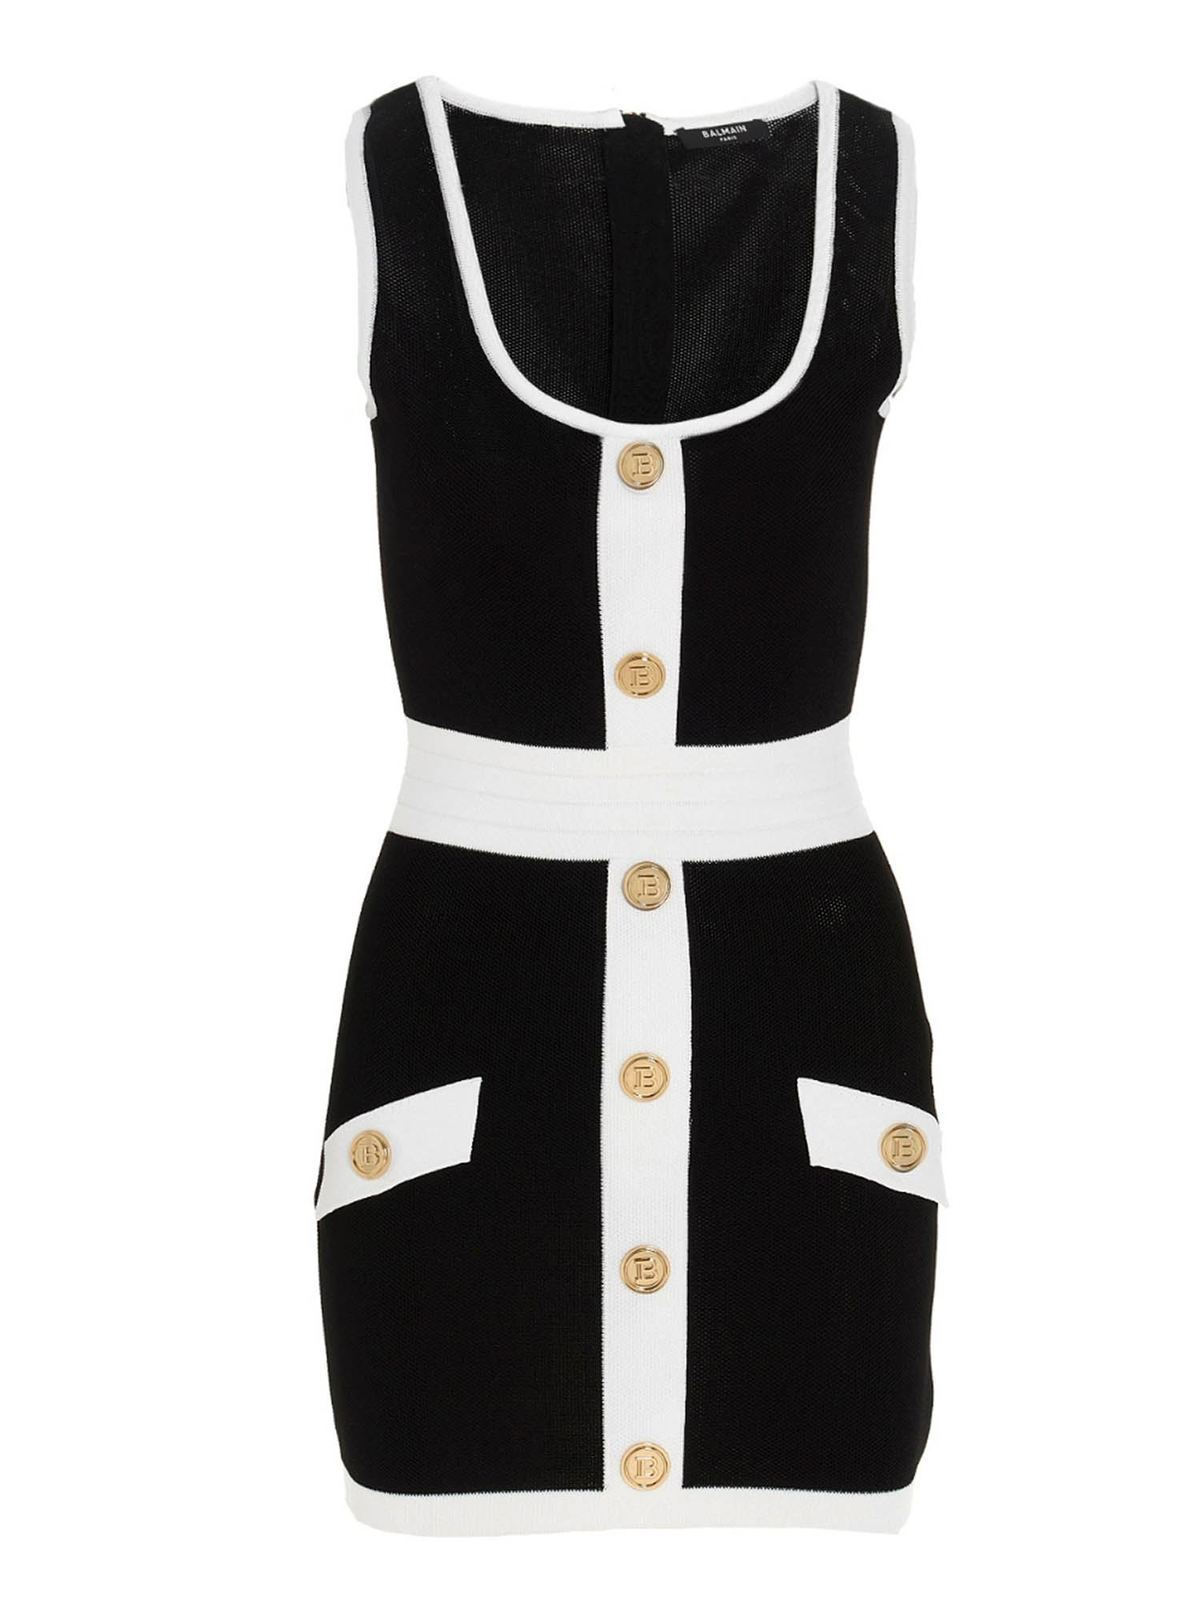 Balmain Dresses BUTTONED DRESS IN BLACK AND WHITE